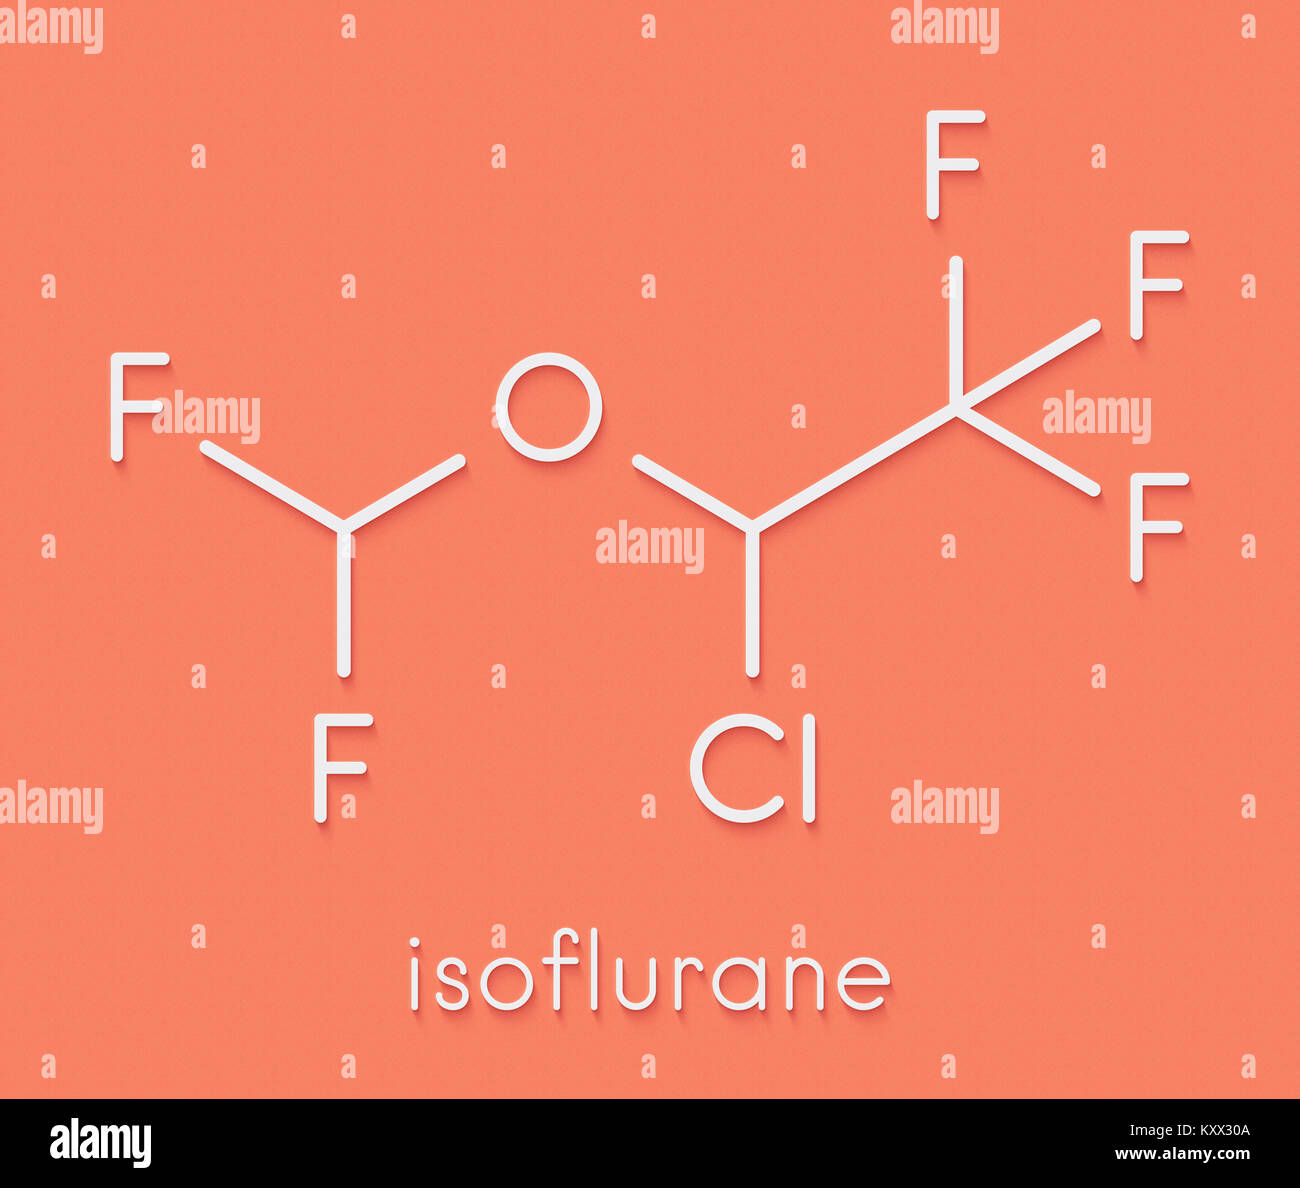 Isoflurane - FDA prescribing information, side effects and ...